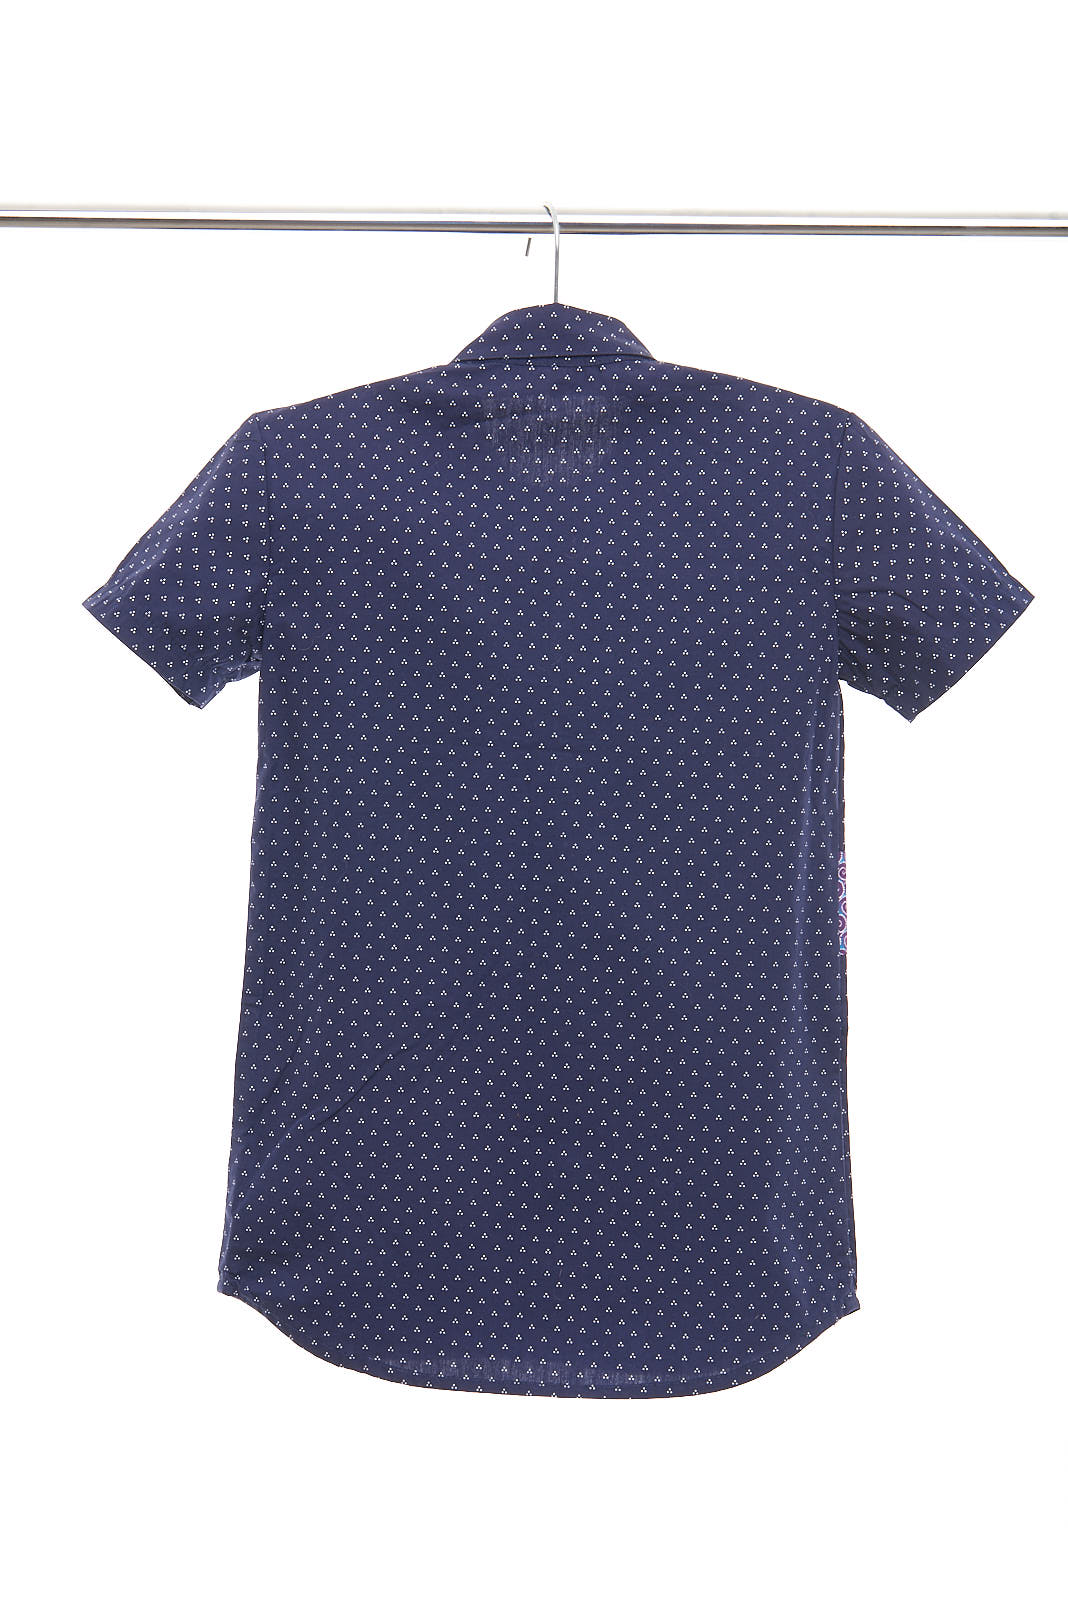 "Boys Short Sleeve Shirt ""Siyabulela"" - LESEDI"